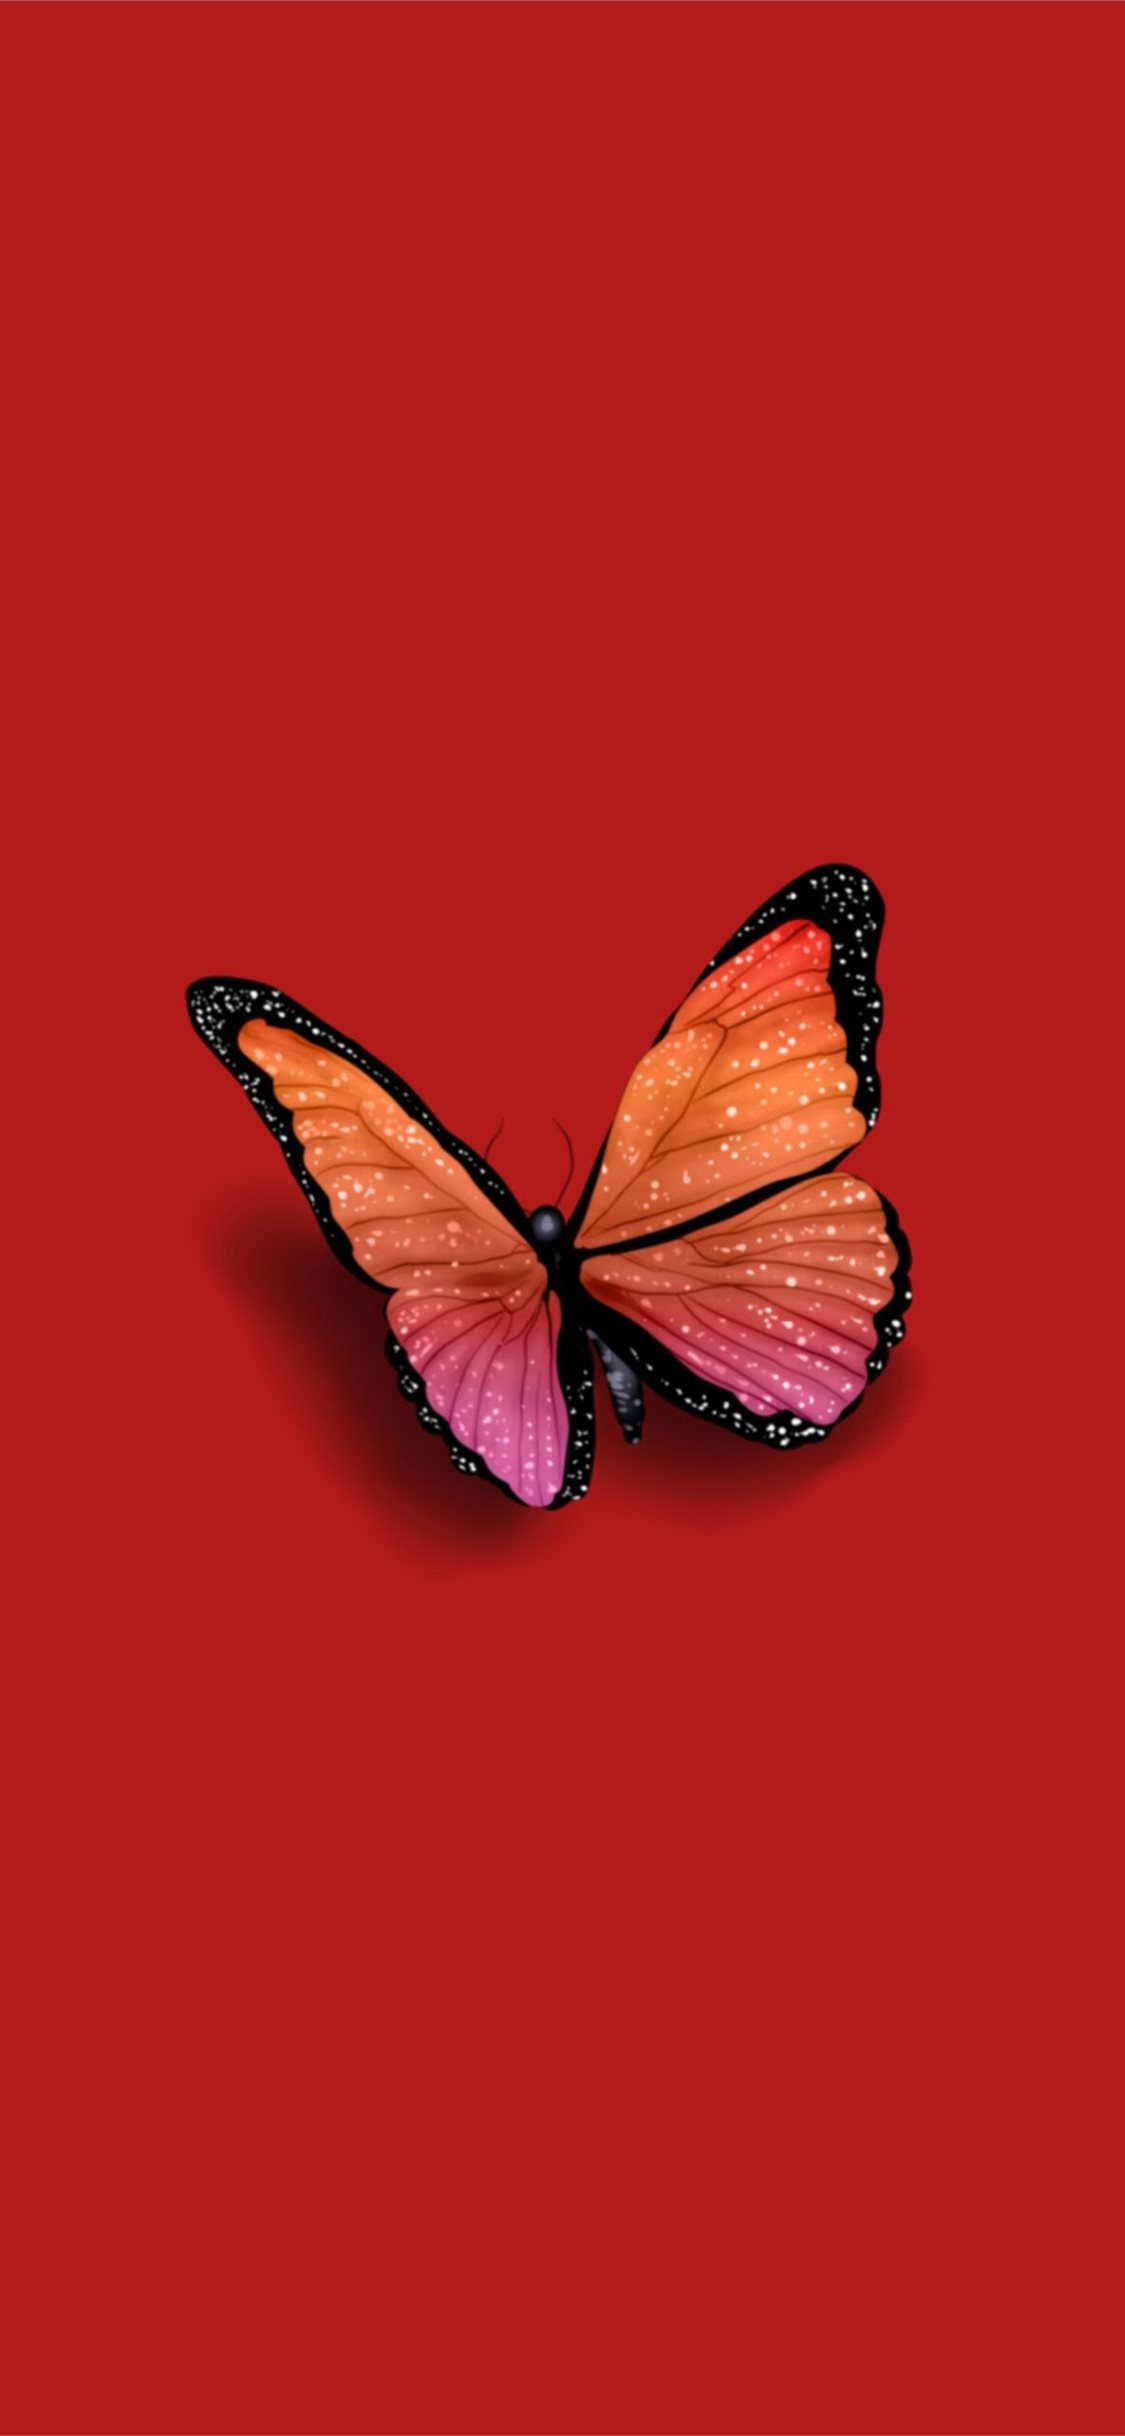 Butterfly By Steph On Colors Iphone X Wallpapers Free Download